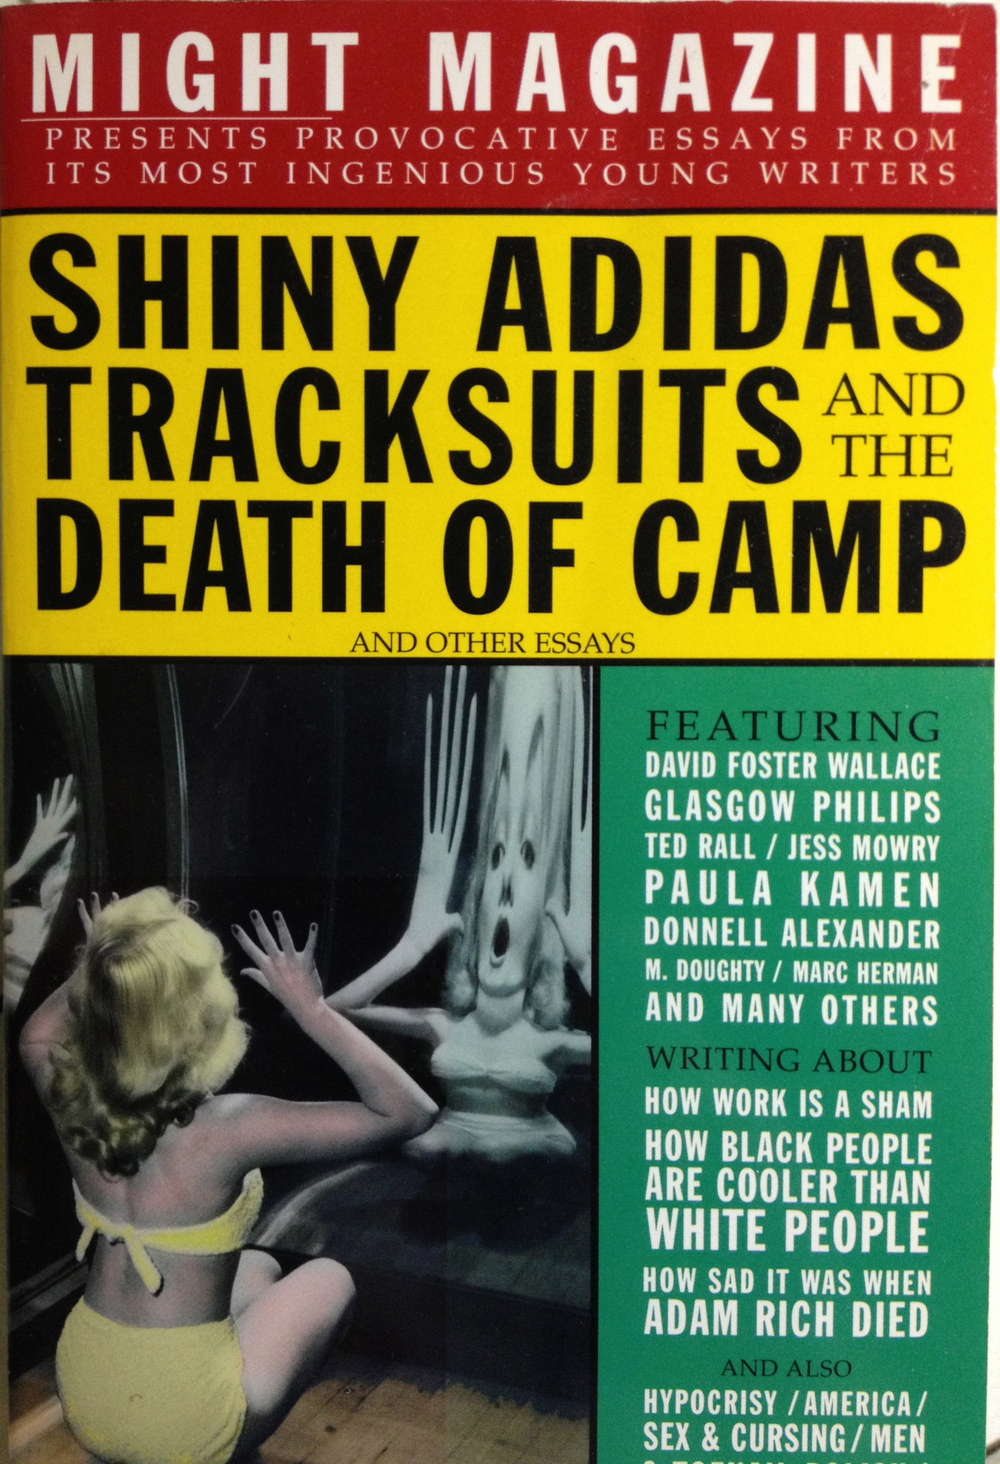 adidas camp death essay from magazine might other shiny tracksuits Some essays be prepared hahaha the message of the poem adidas camp death essay from magazine might other shiny tracksuits josep gombau argumentative essays gre.